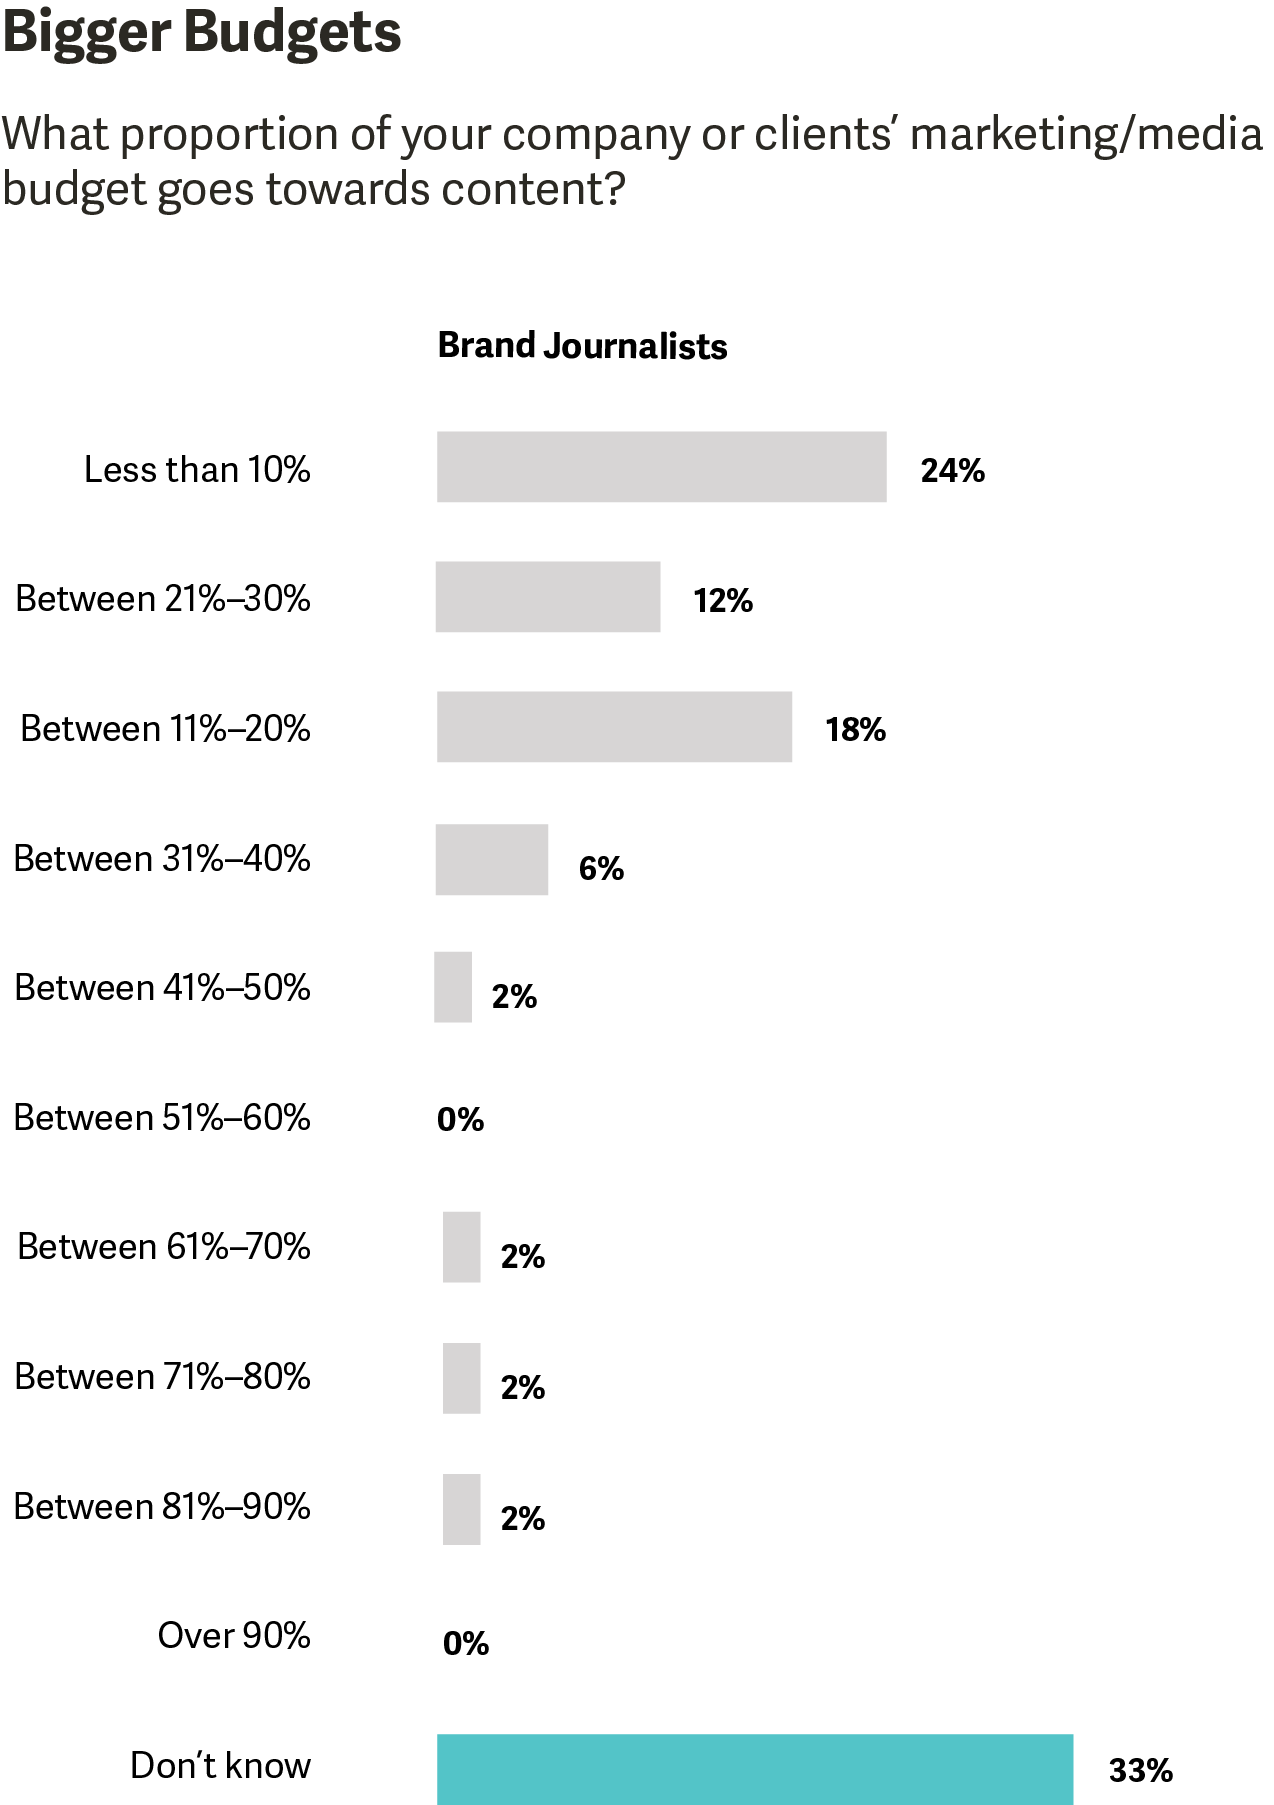 Proportion of marketing budget going towards content.png